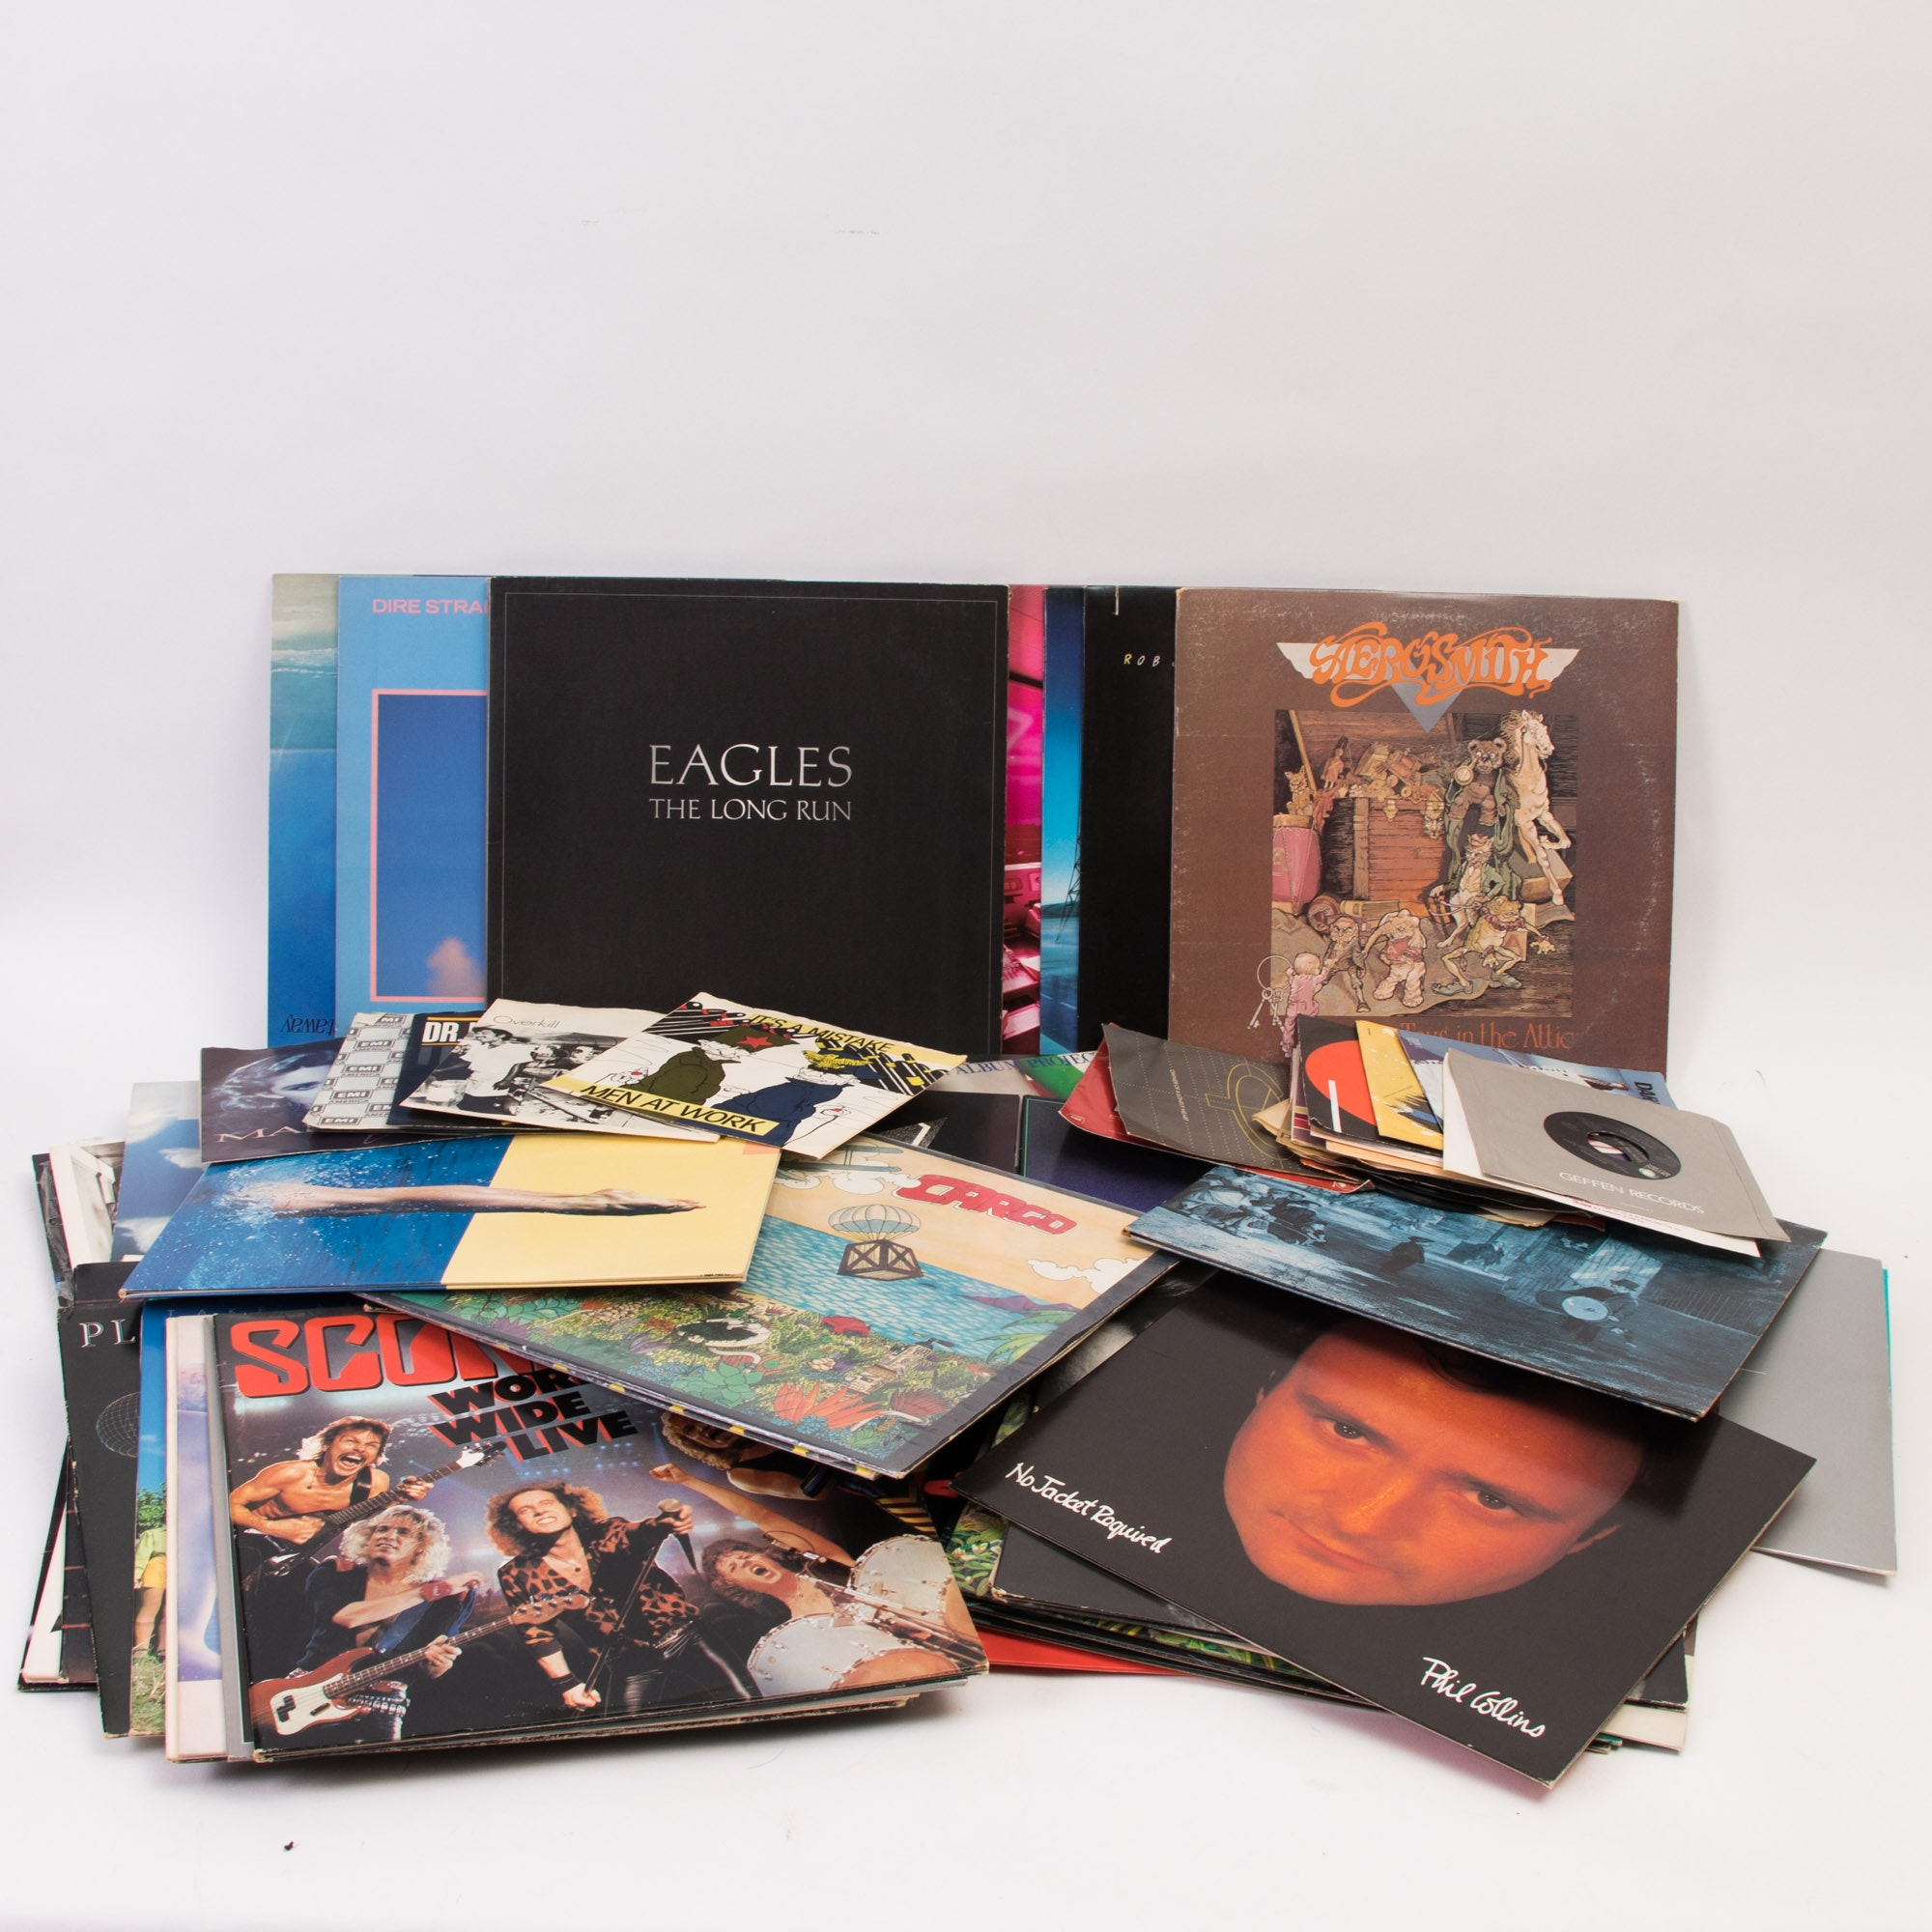 Assortment of 33 1/3 and 45 Records